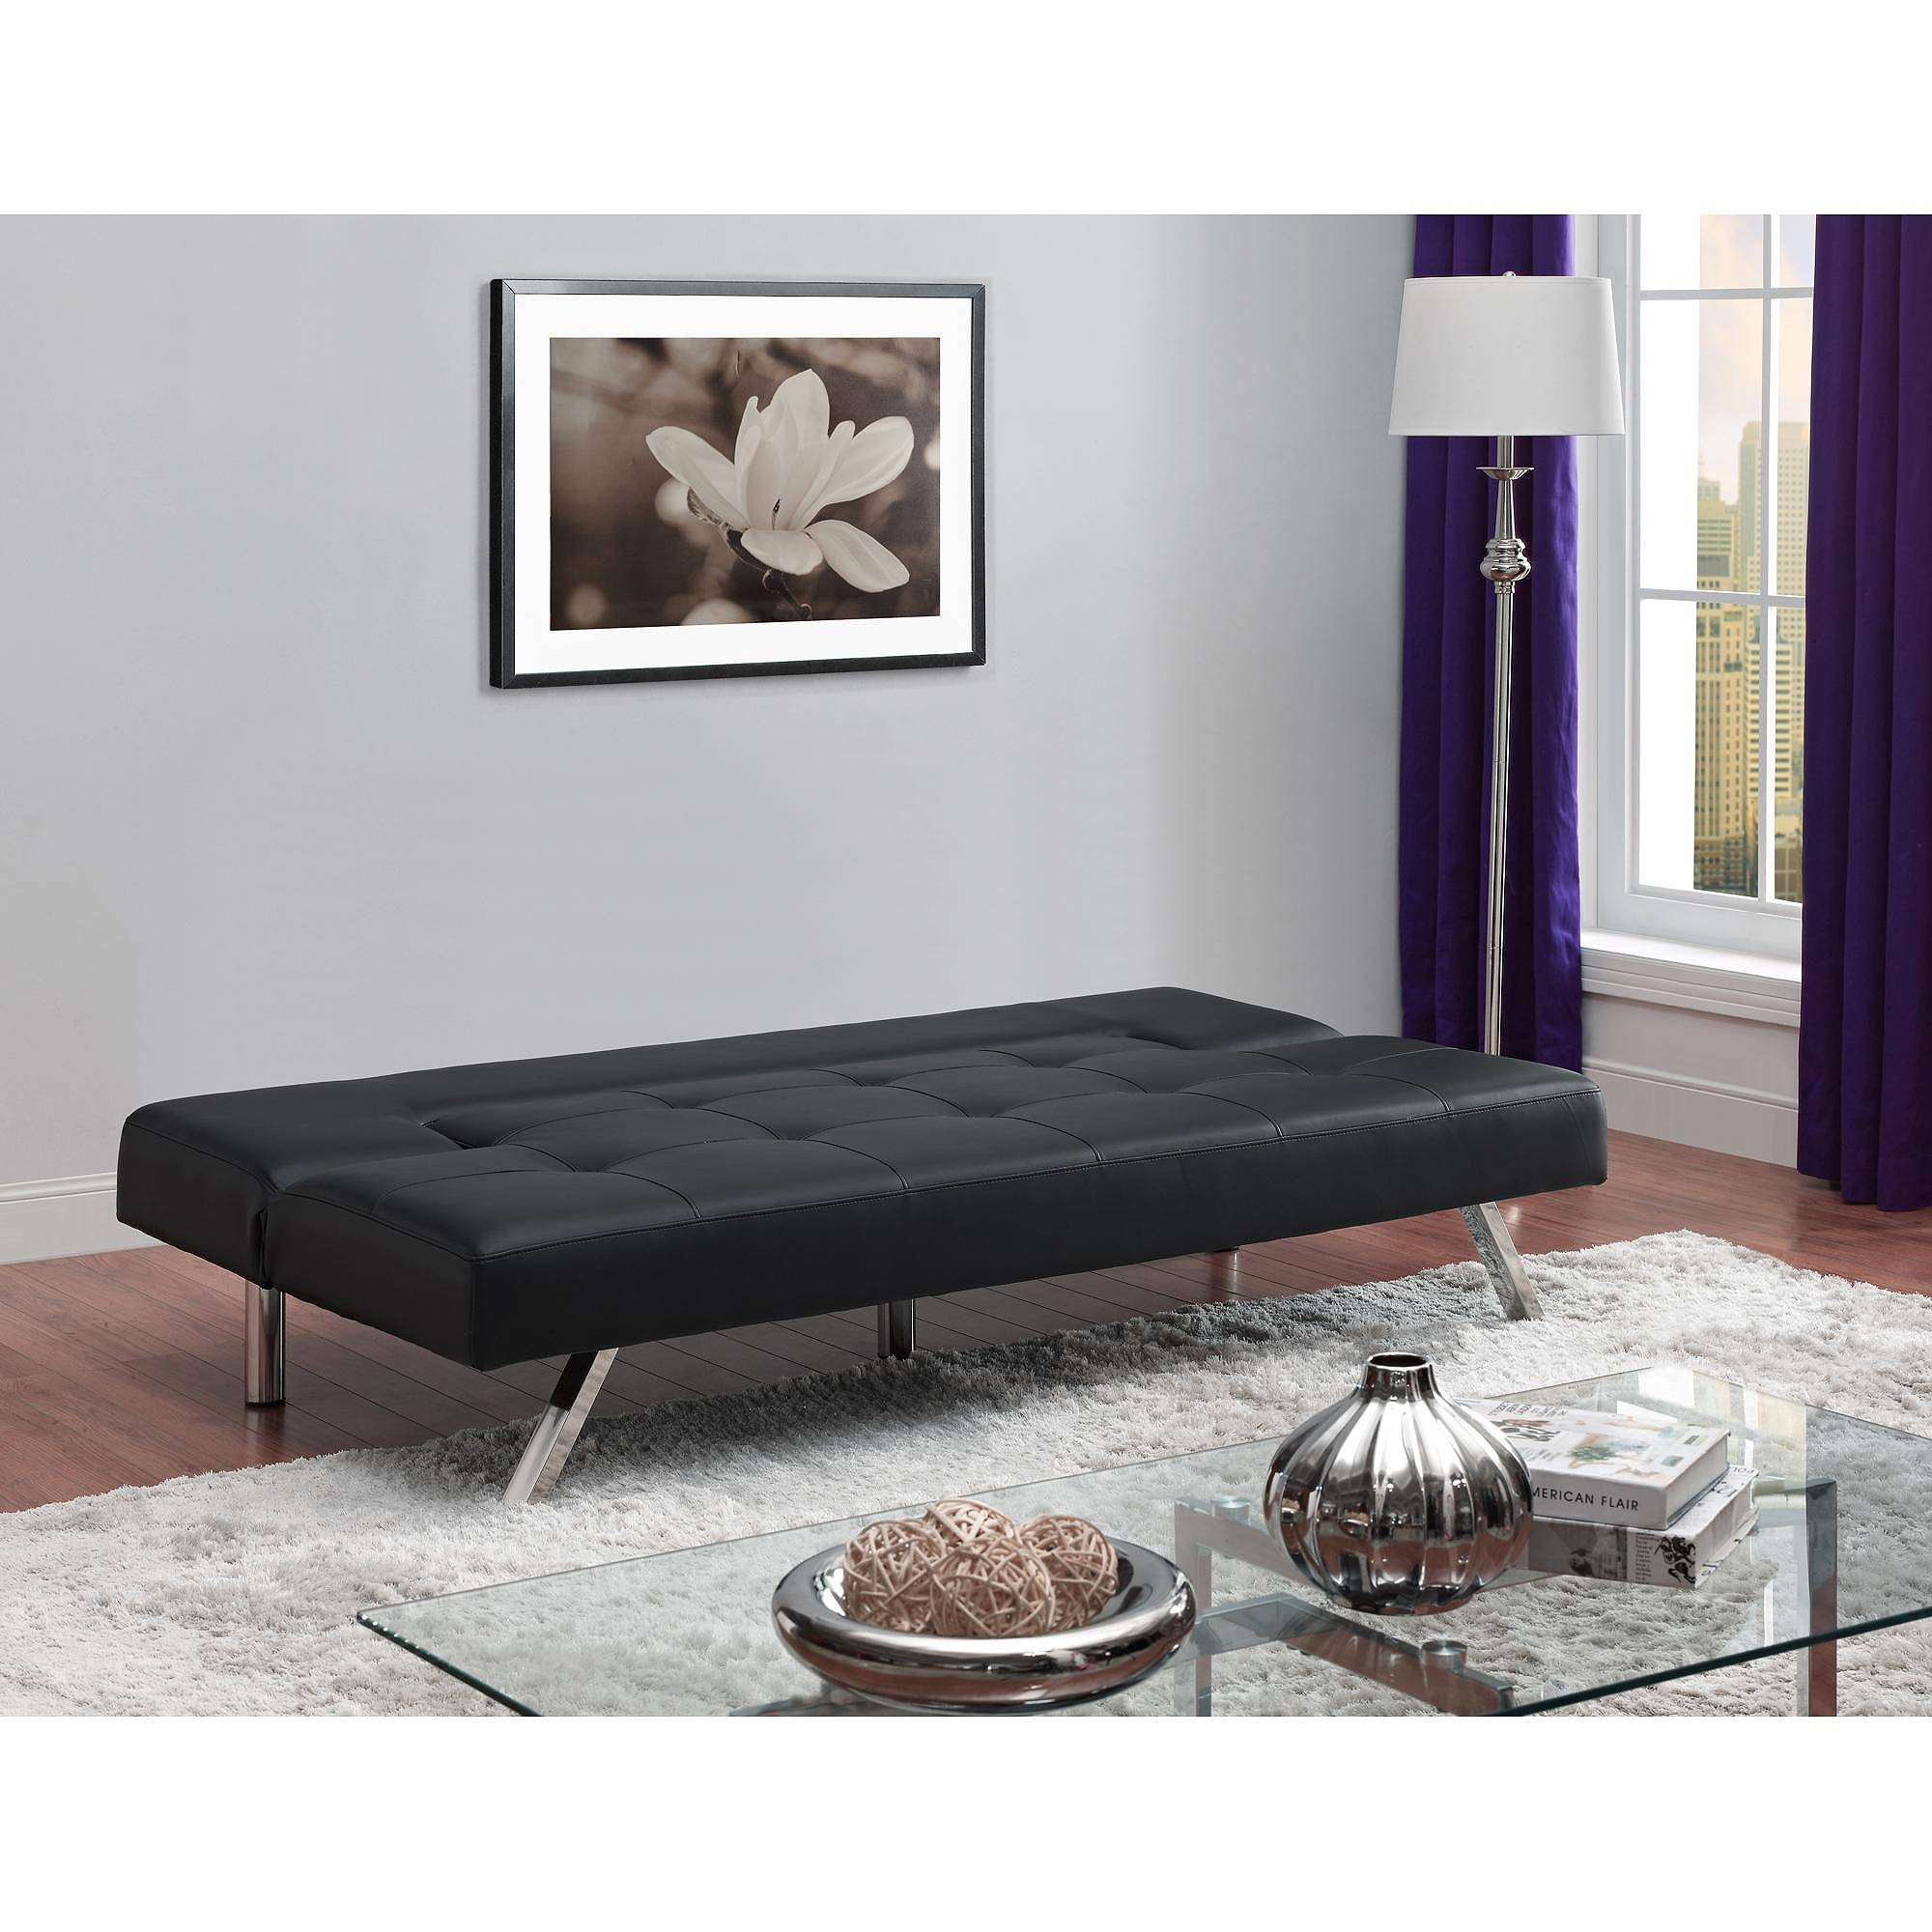 Furniture: Leather Futon Walmart | Futons At Kmart | Futon Full Size intended for Kmart Futon Beds (Image 7 of 15)